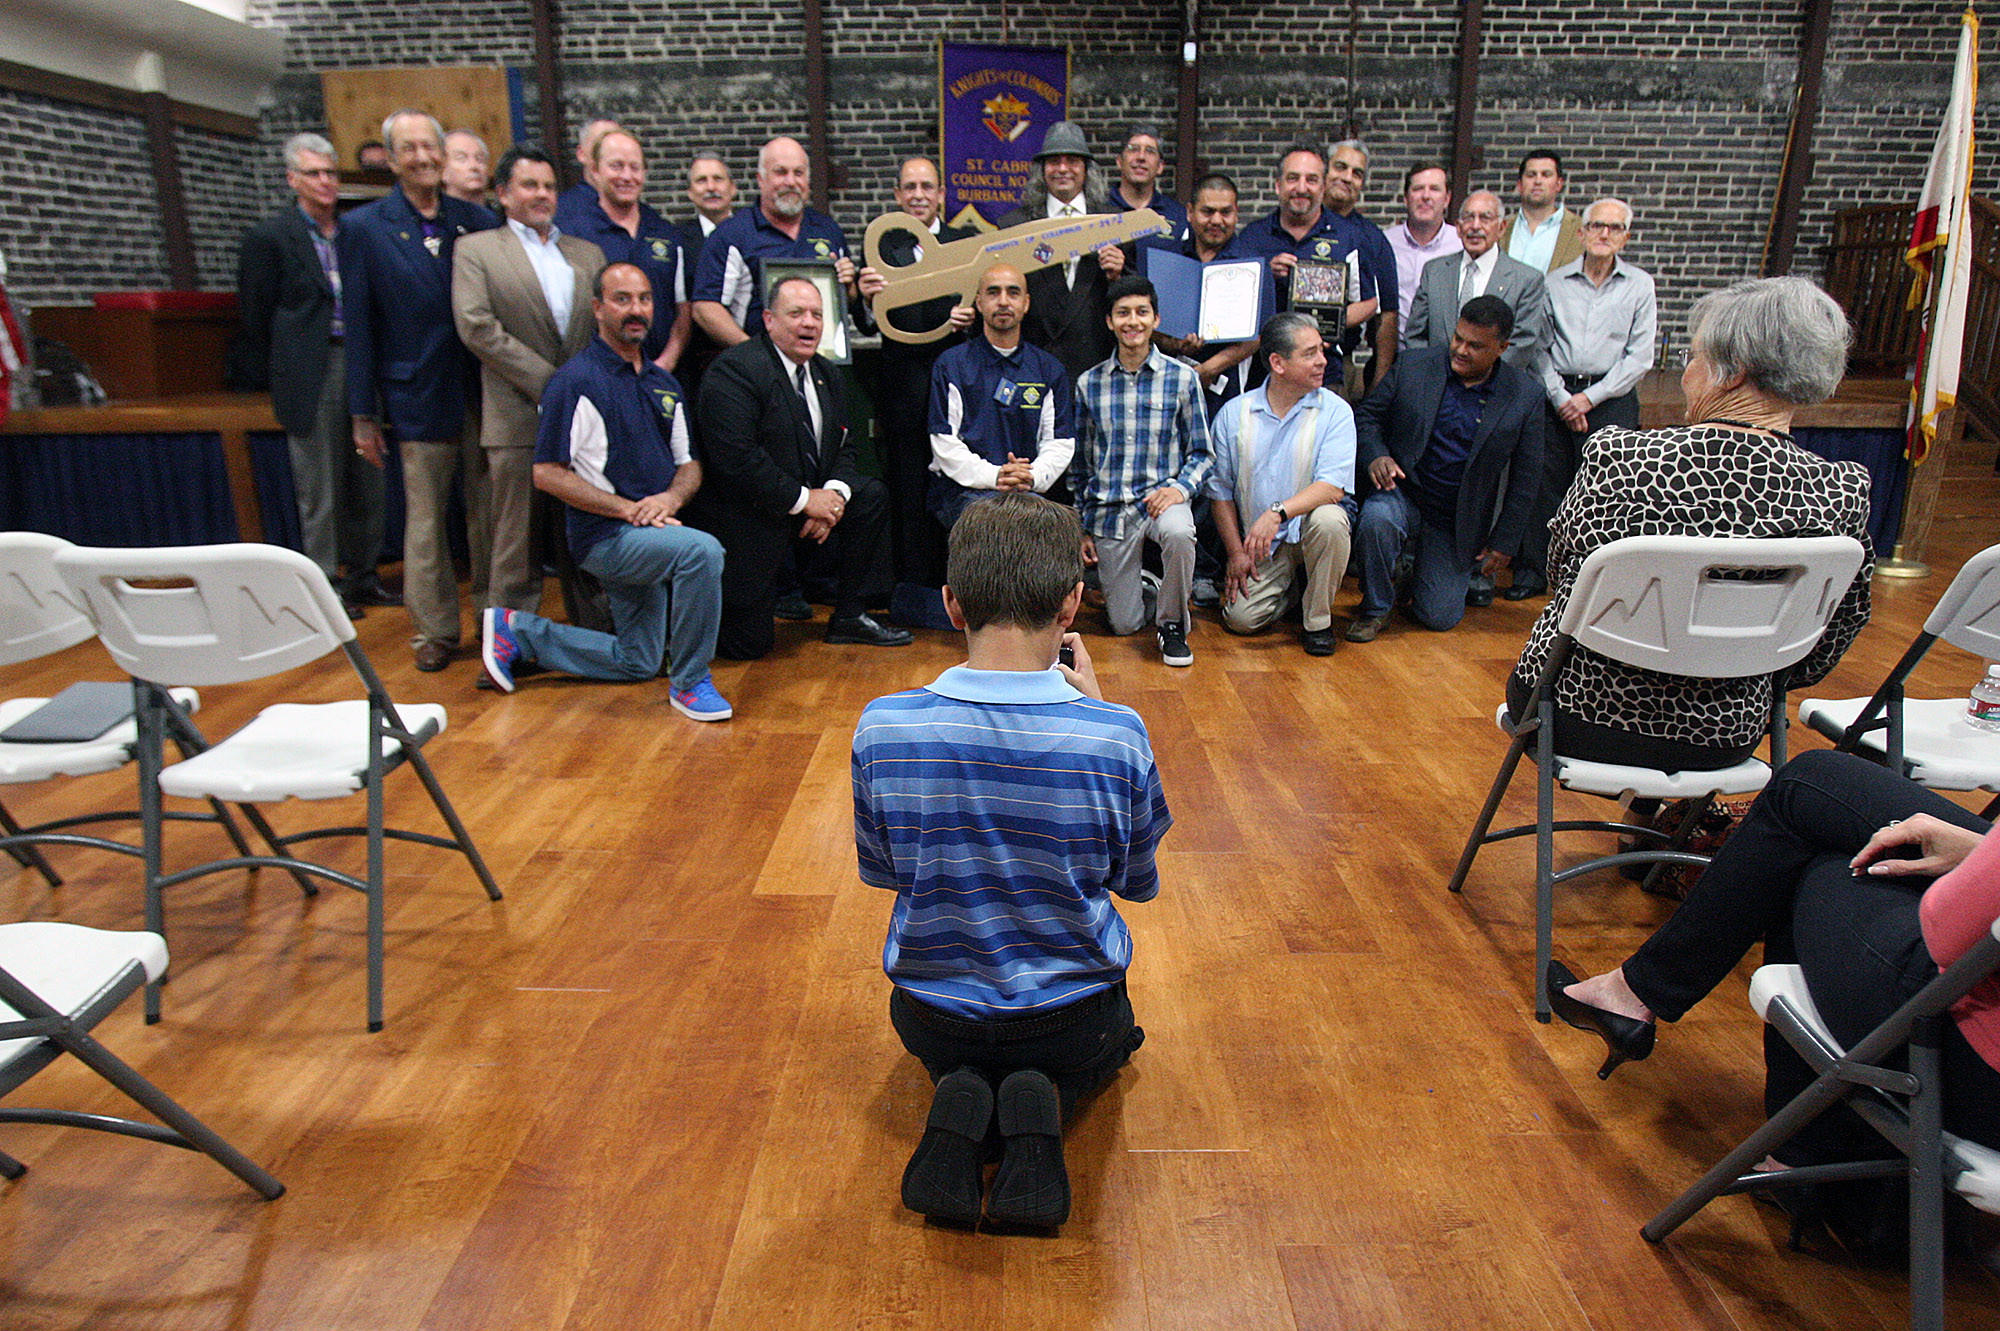 Anthony Chiaravalle, 11, of Burbank, takes a group photo with his iPhone of the Knights who attended the first meeting, and hall rededication ceremony of the Knights of Columbus Saint Cabrini Council in Burbank on Friday, March 21, 2014 since the fire that destroyed the adjacent building and damaged their building in May, 2013.